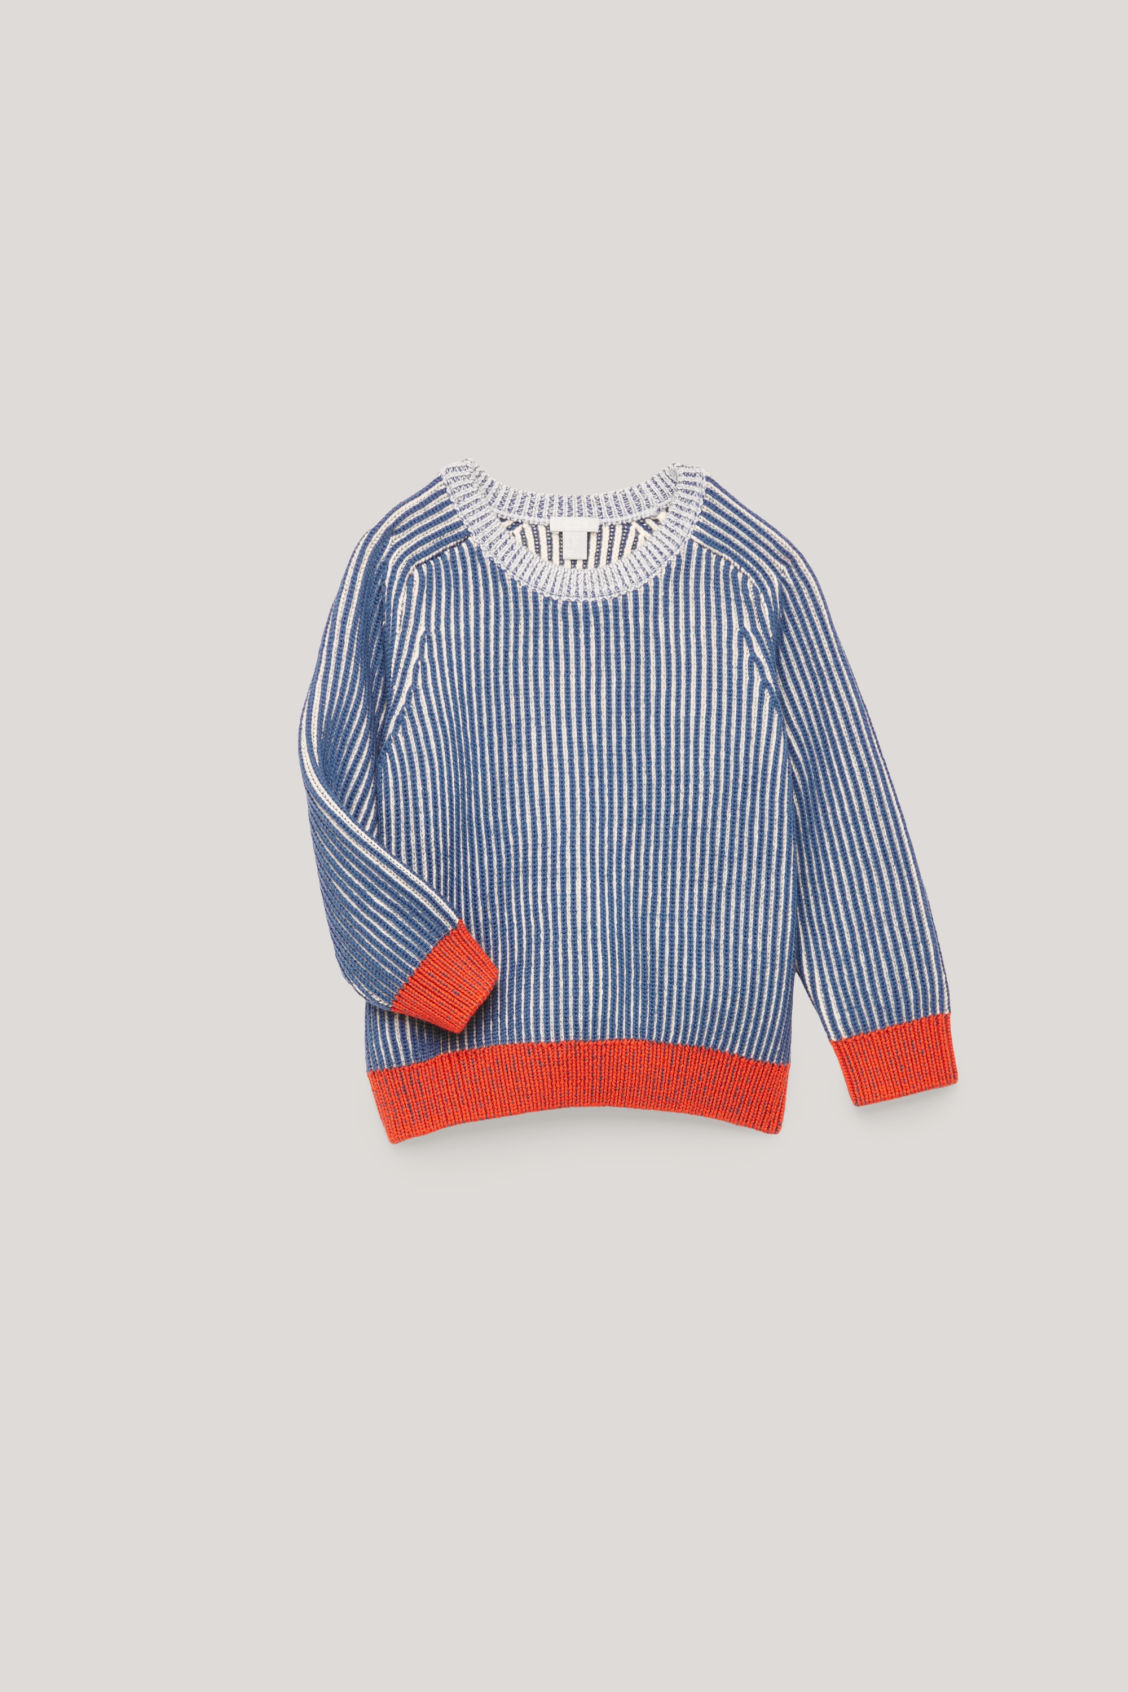 Detailed image of Cos half-cardigian stitch jumper in blue